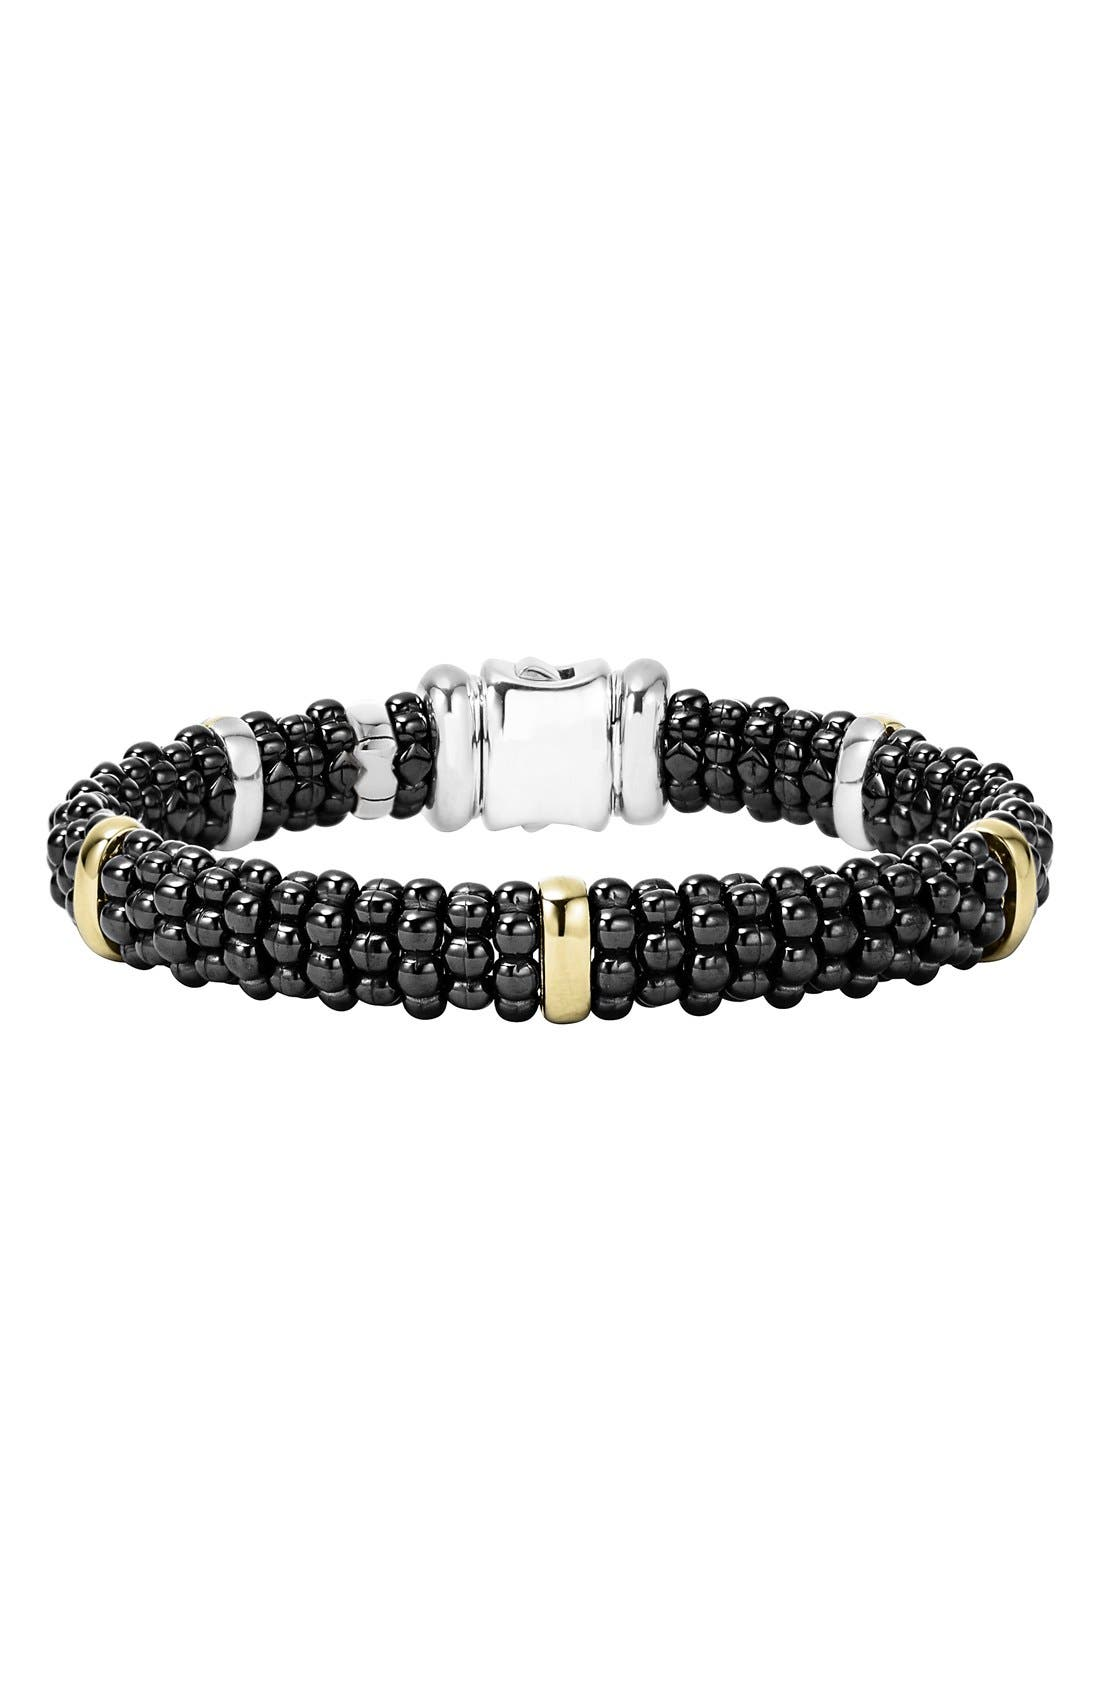 Alternate Image 1 Selected - LAGOS 'Black Caviar' Rope Bracelet